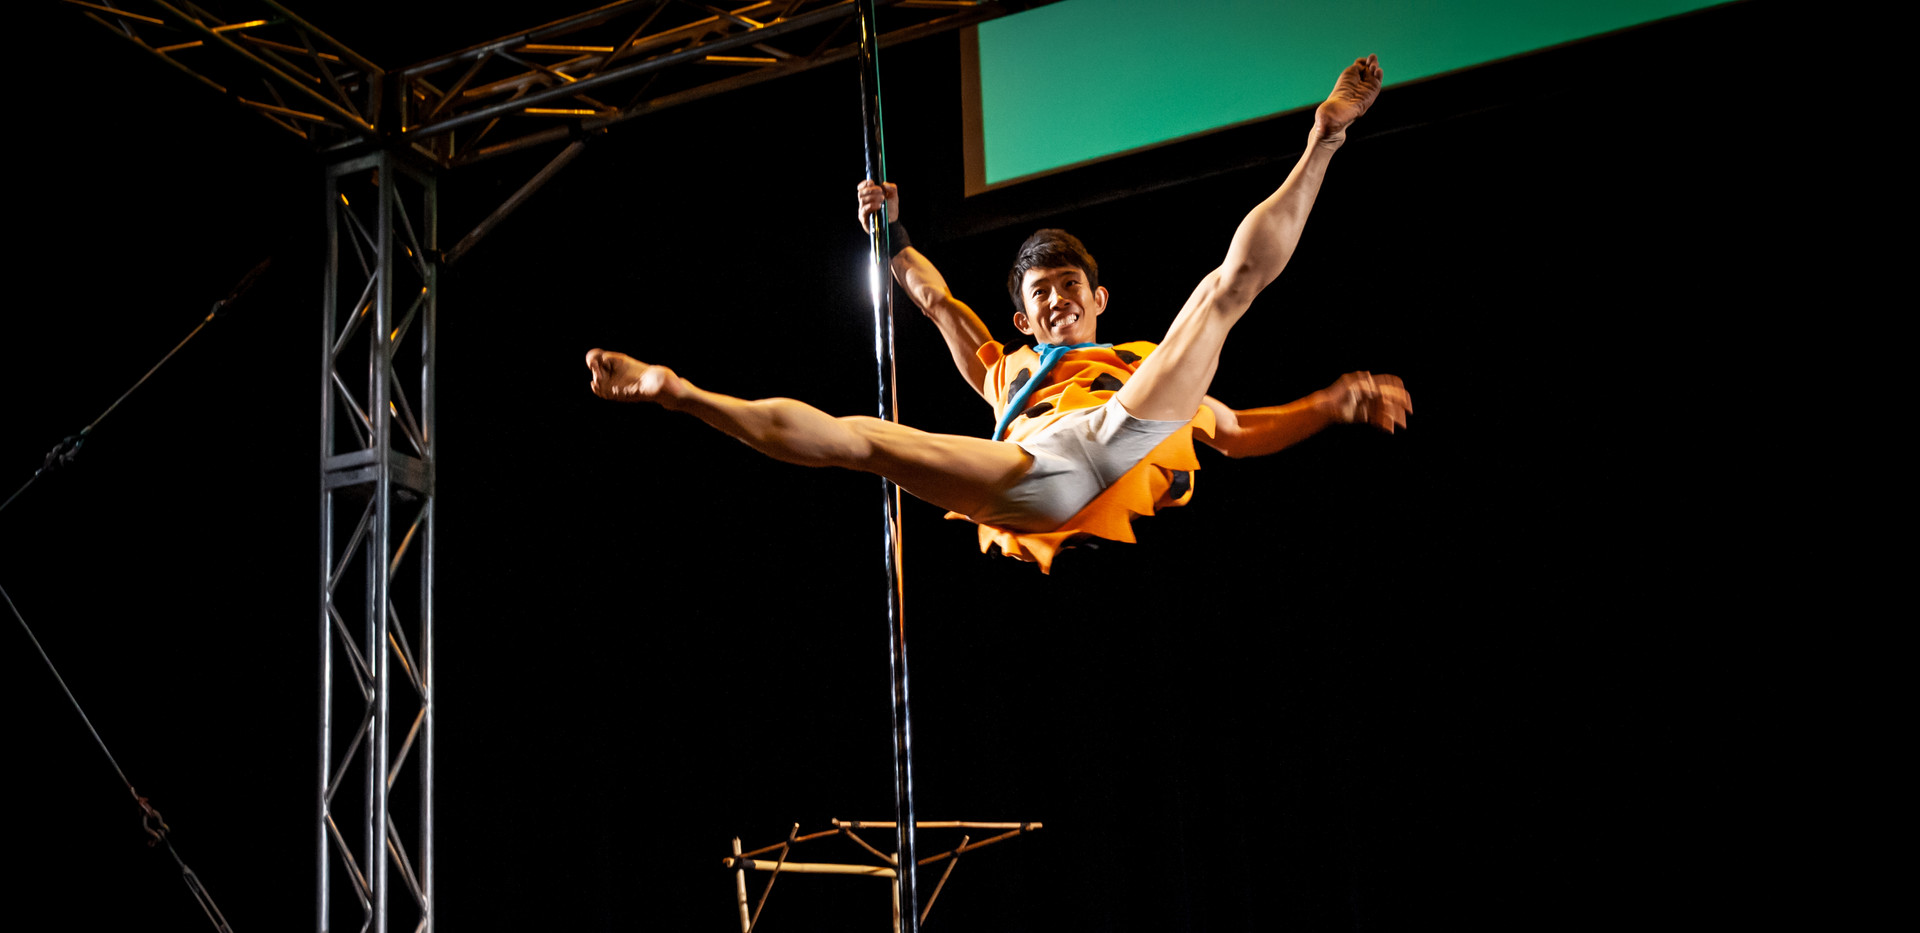 Robbie Song - 2018 Professional Pole Comedy Winner